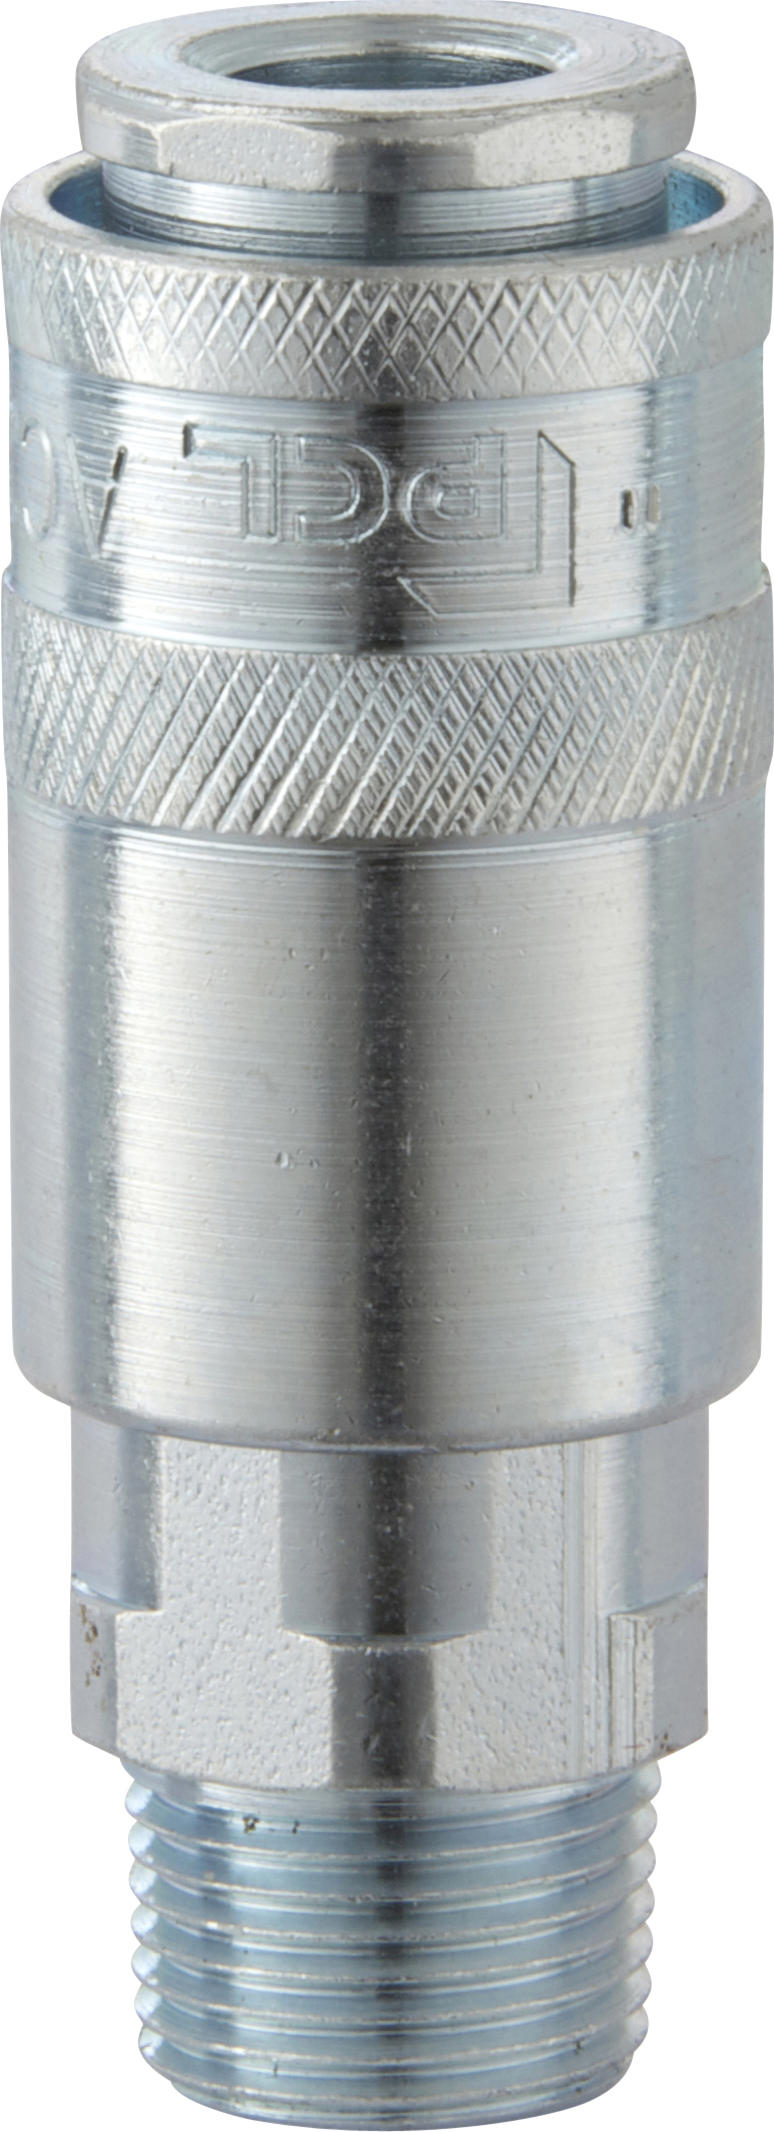 PCL Standard Airflow Couplings